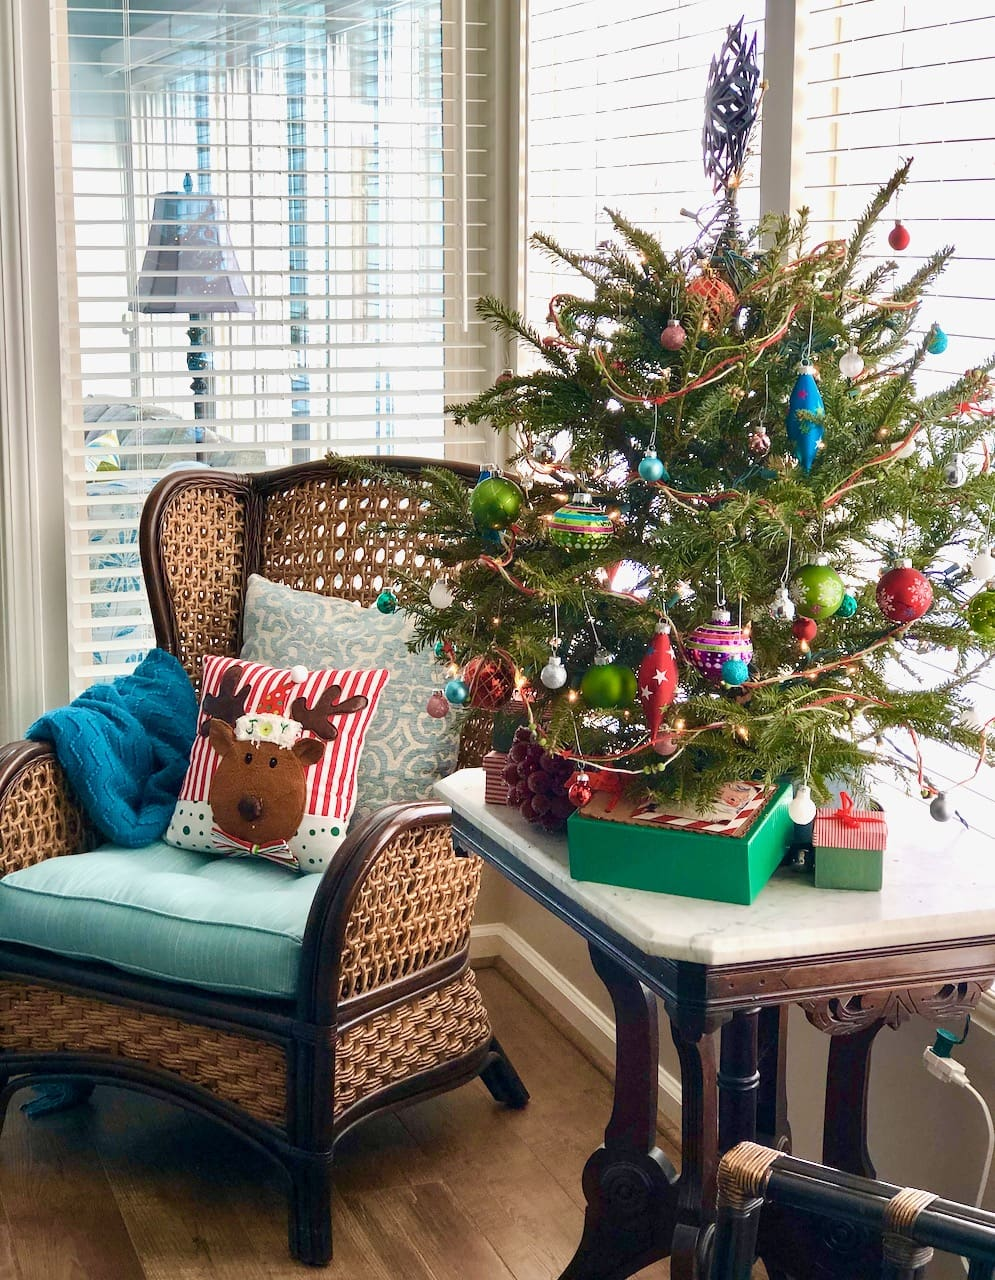 small tree decorated with shiny green and blue ornaments.